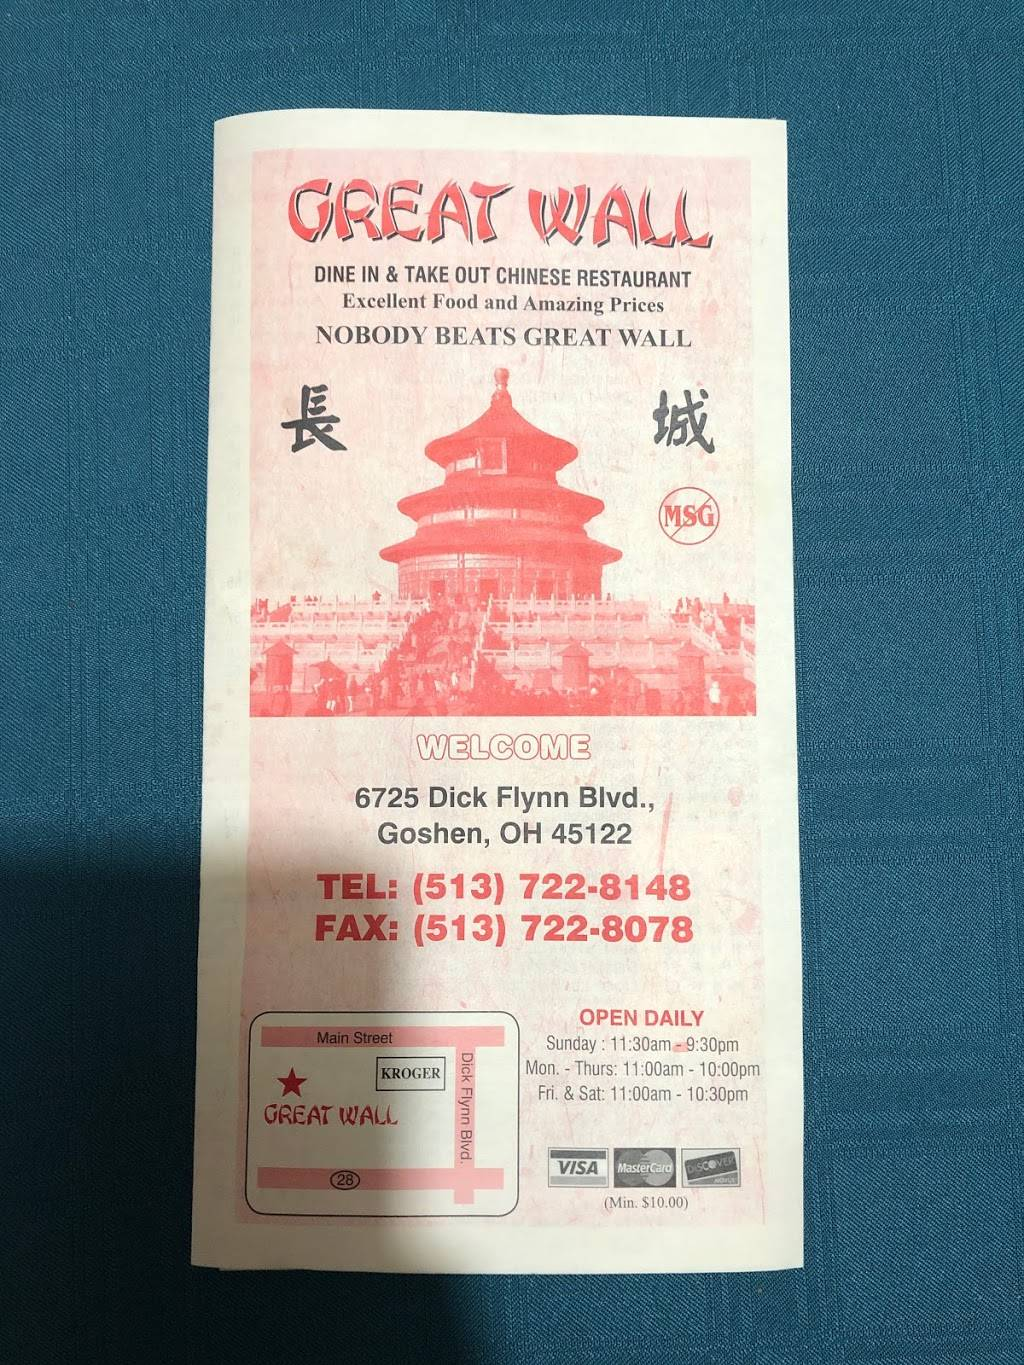 Great Wall | restaurant | 6725 Dick Flynn Blvd # D, Goshen, OH 45122, USA | 5137228148 OR +1 513-722-8148